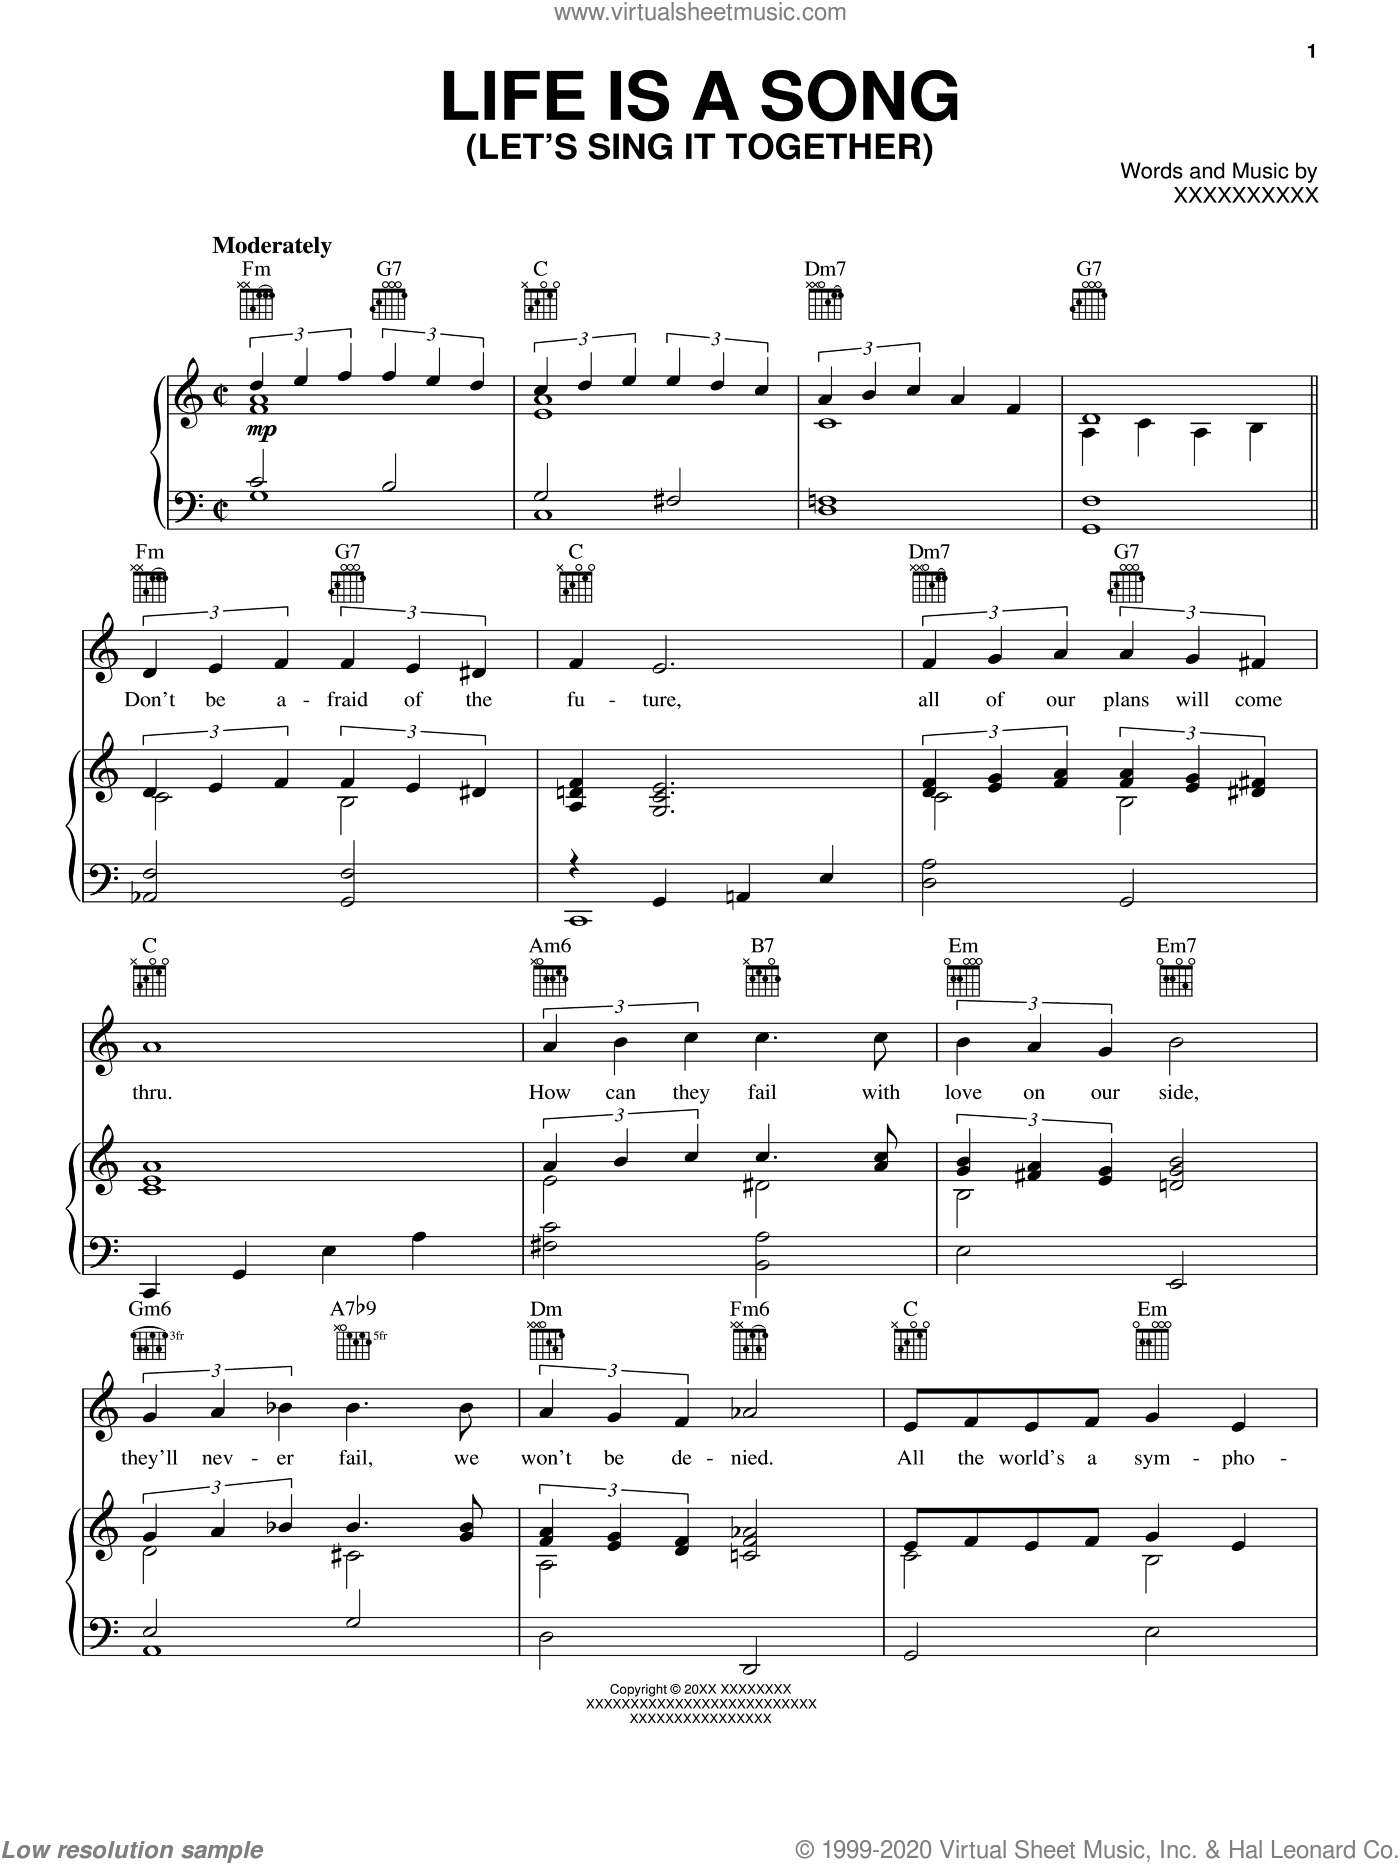 Life Is A Song (Let's Sing It Together) sheet music for voice, piano or guitar by Joe Young and Fred Ahlert, intermediate skill level